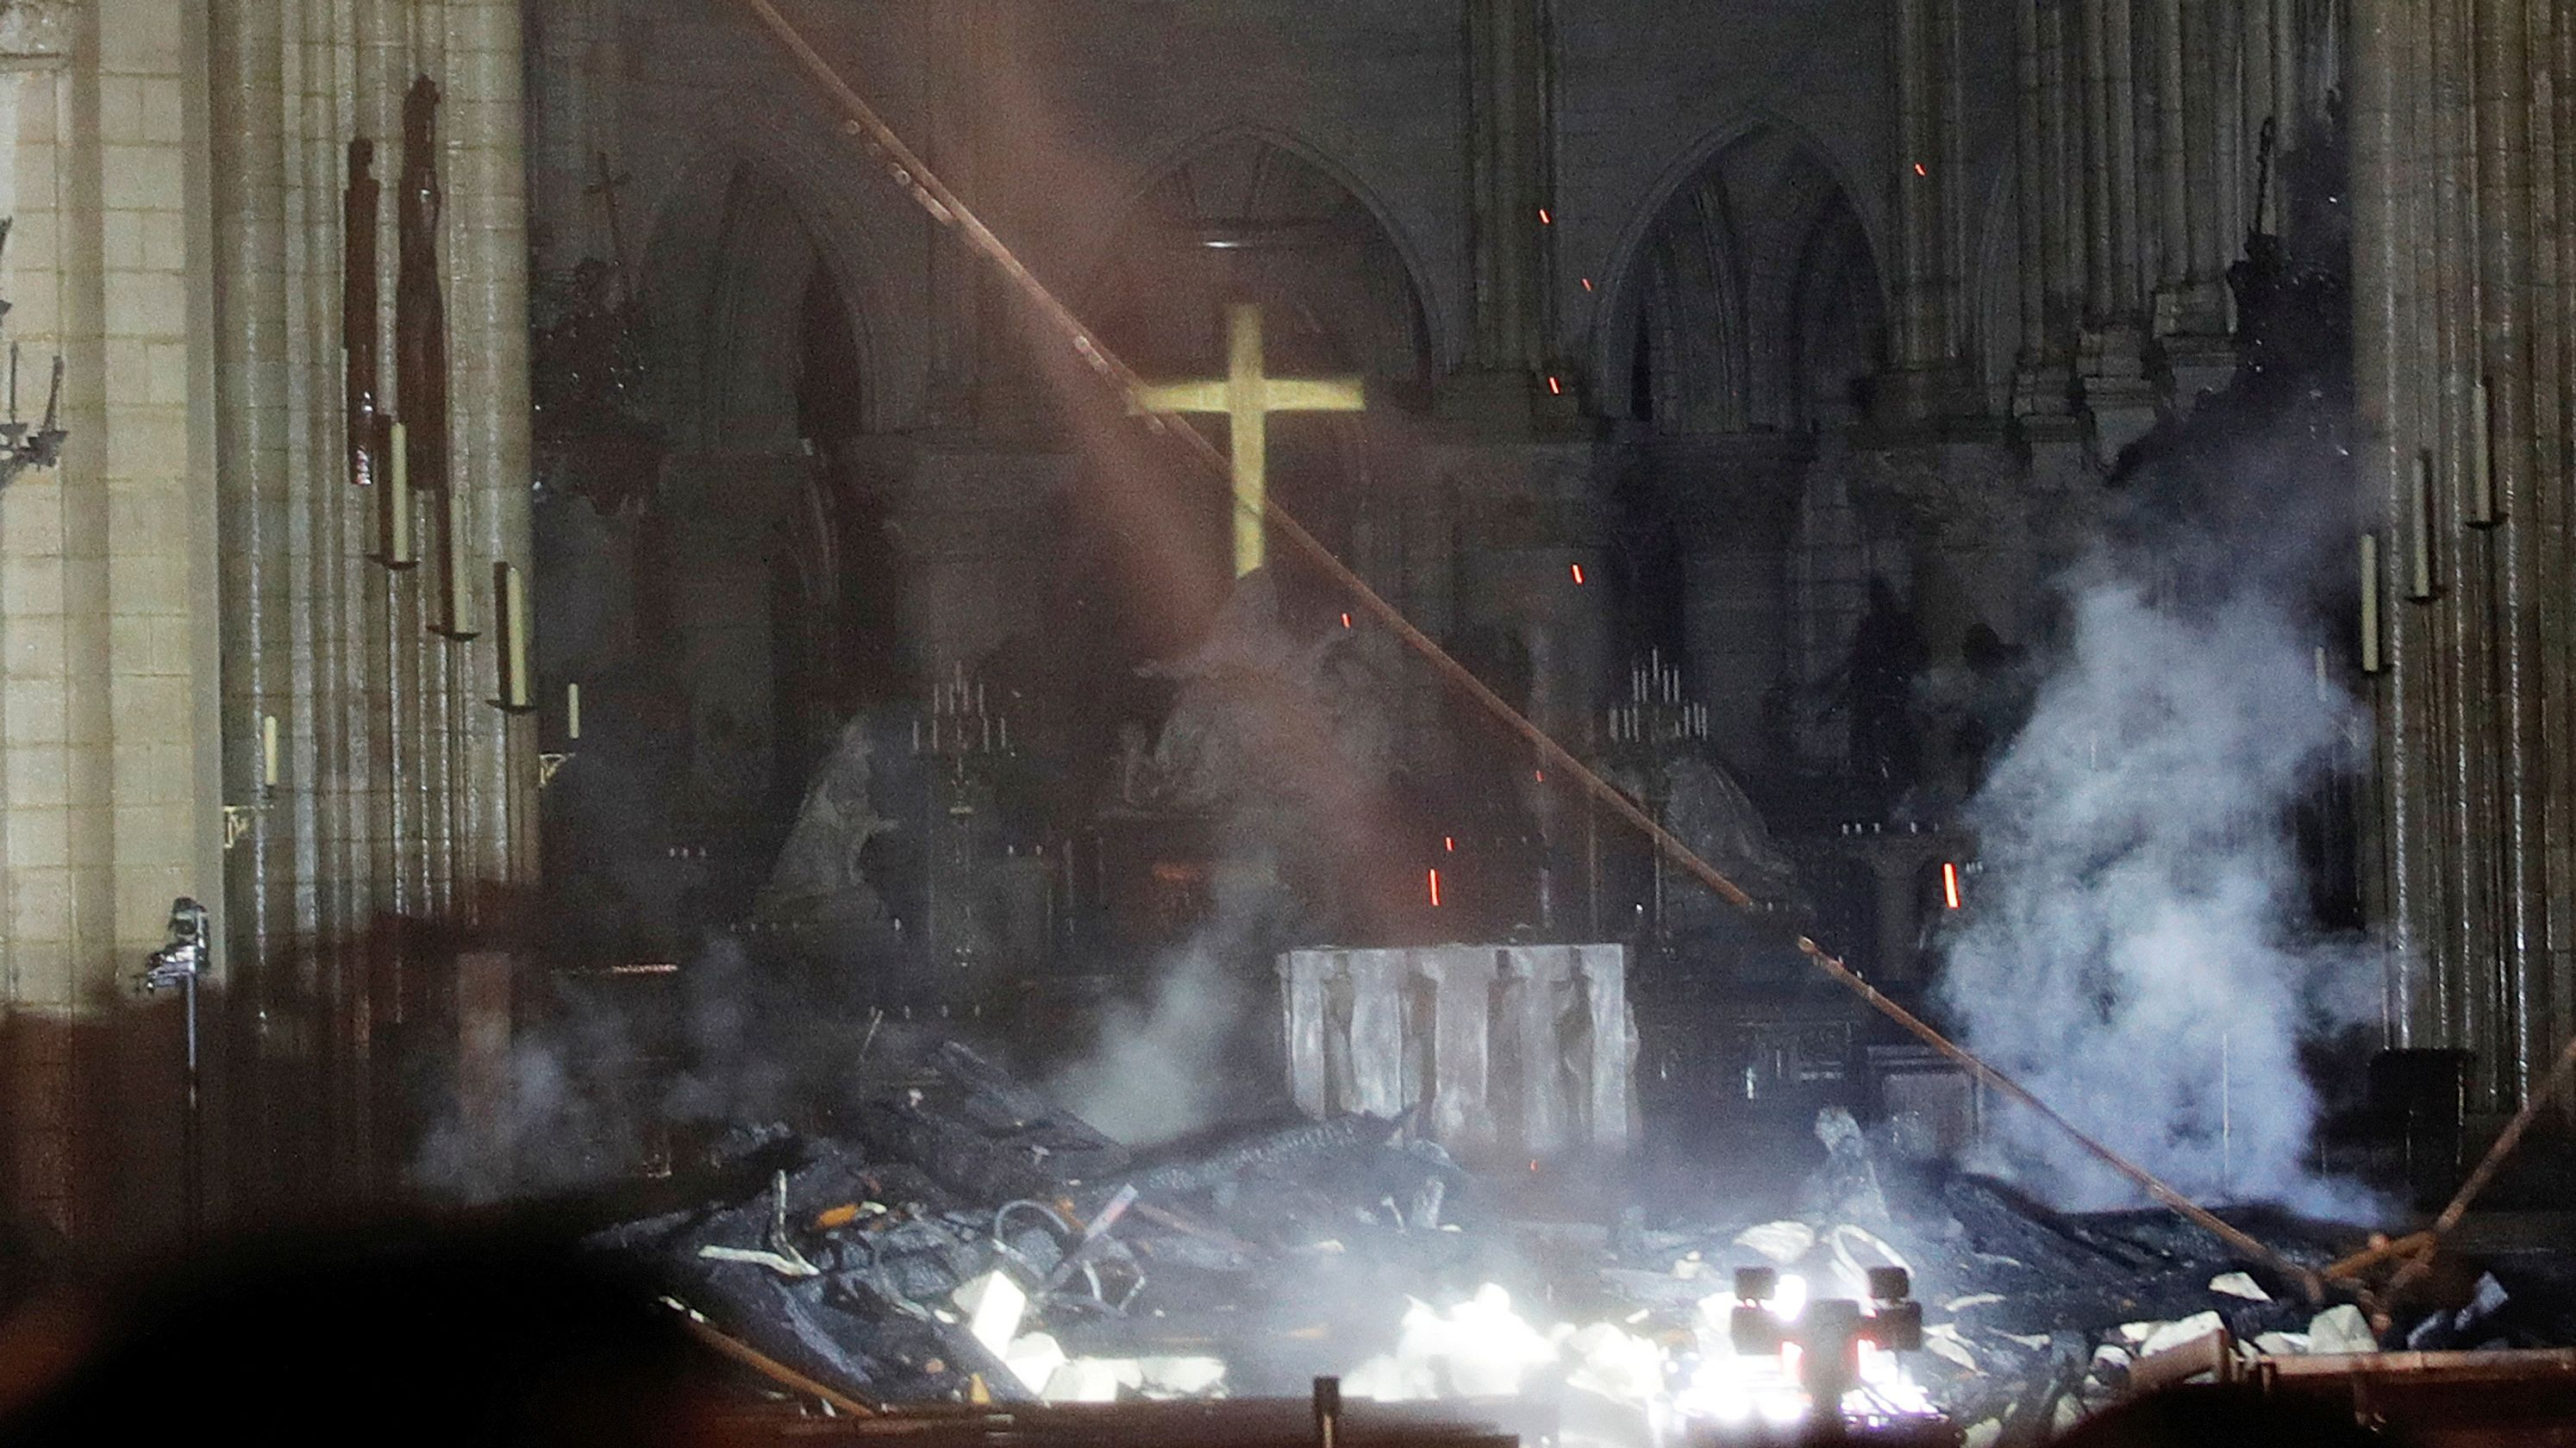 https://lenbilen.files.wordpress.com/2019/04/ap_france_notre_dame_fire.jpg